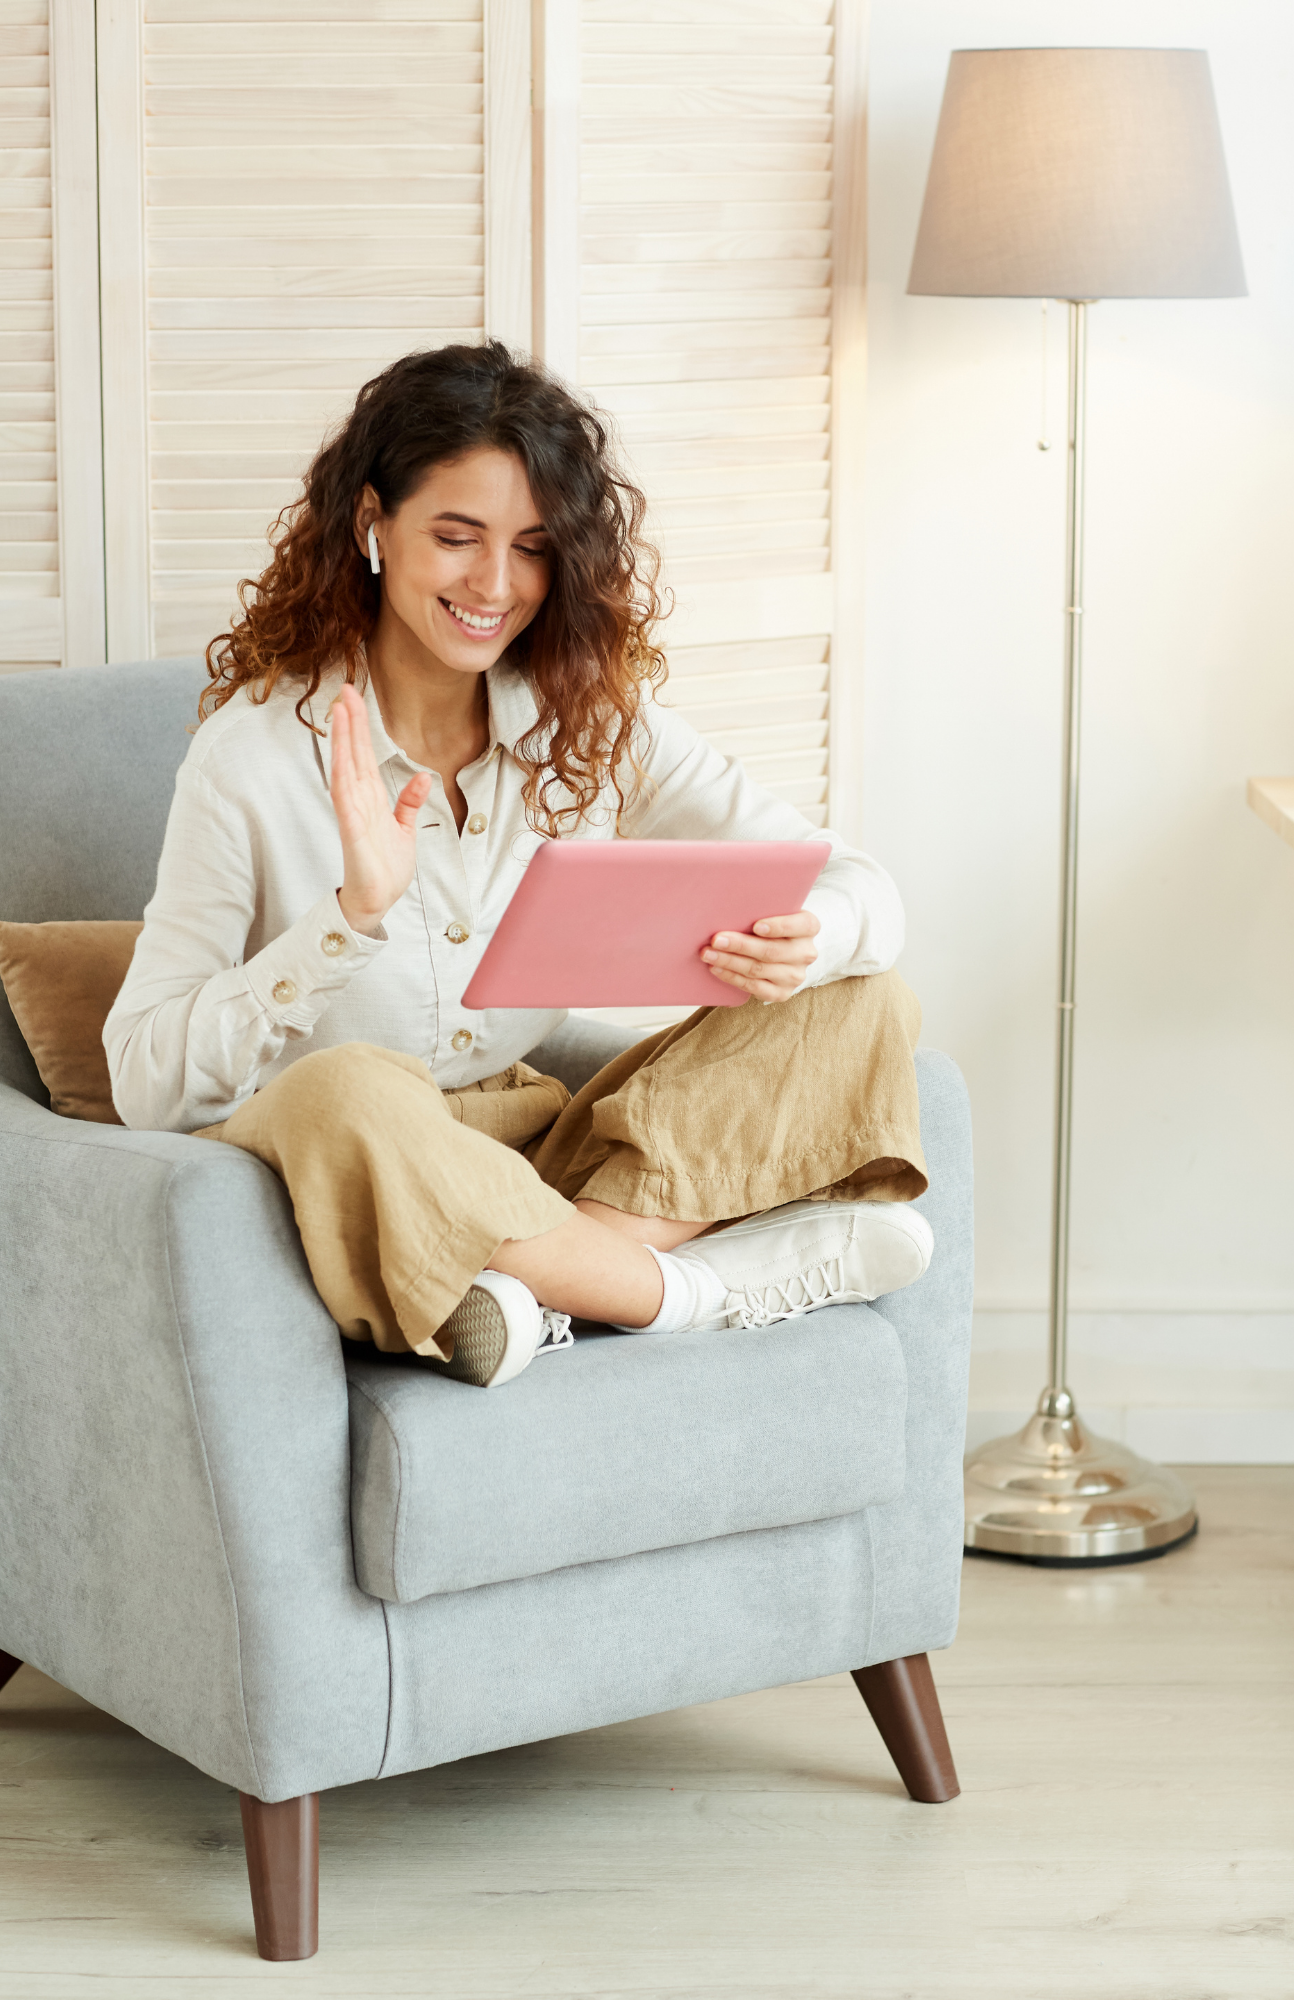 A woman sitting on a chair using virtual outplacement services on a tablet